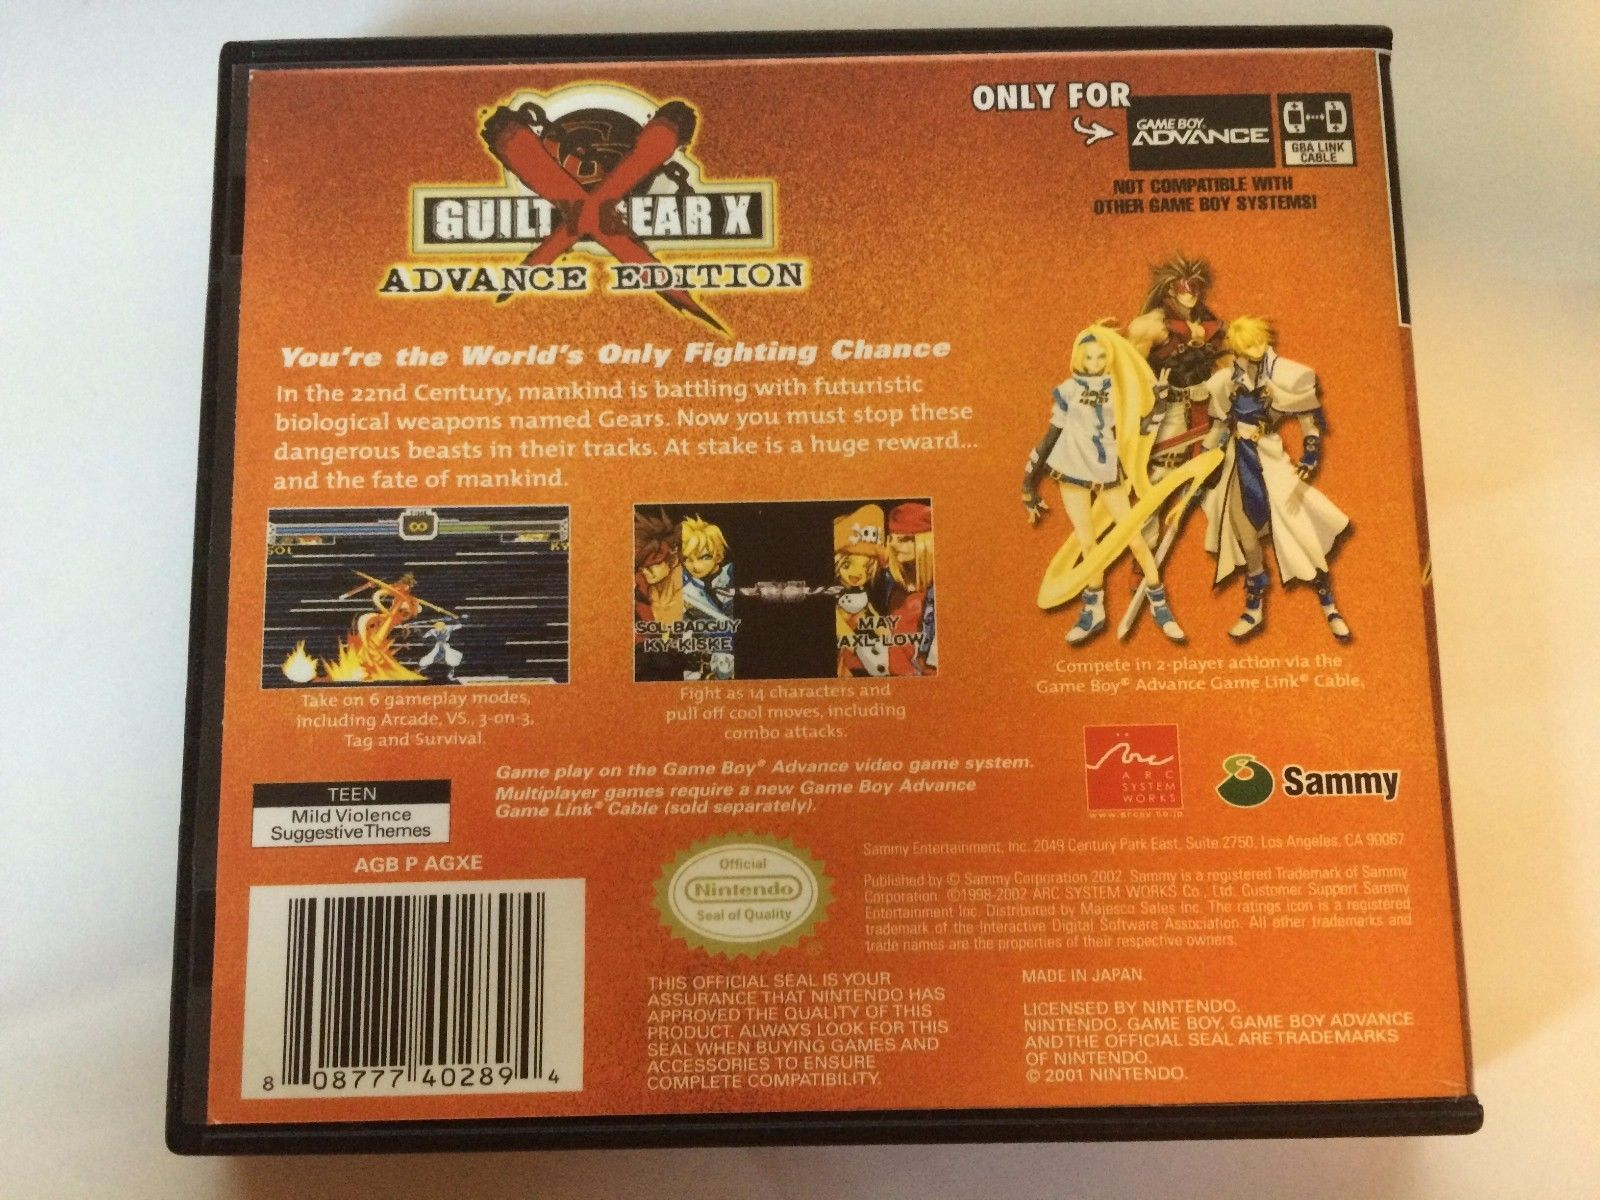 Guilty Gear X Advance Edition - GBA - Replacement Case - No Game